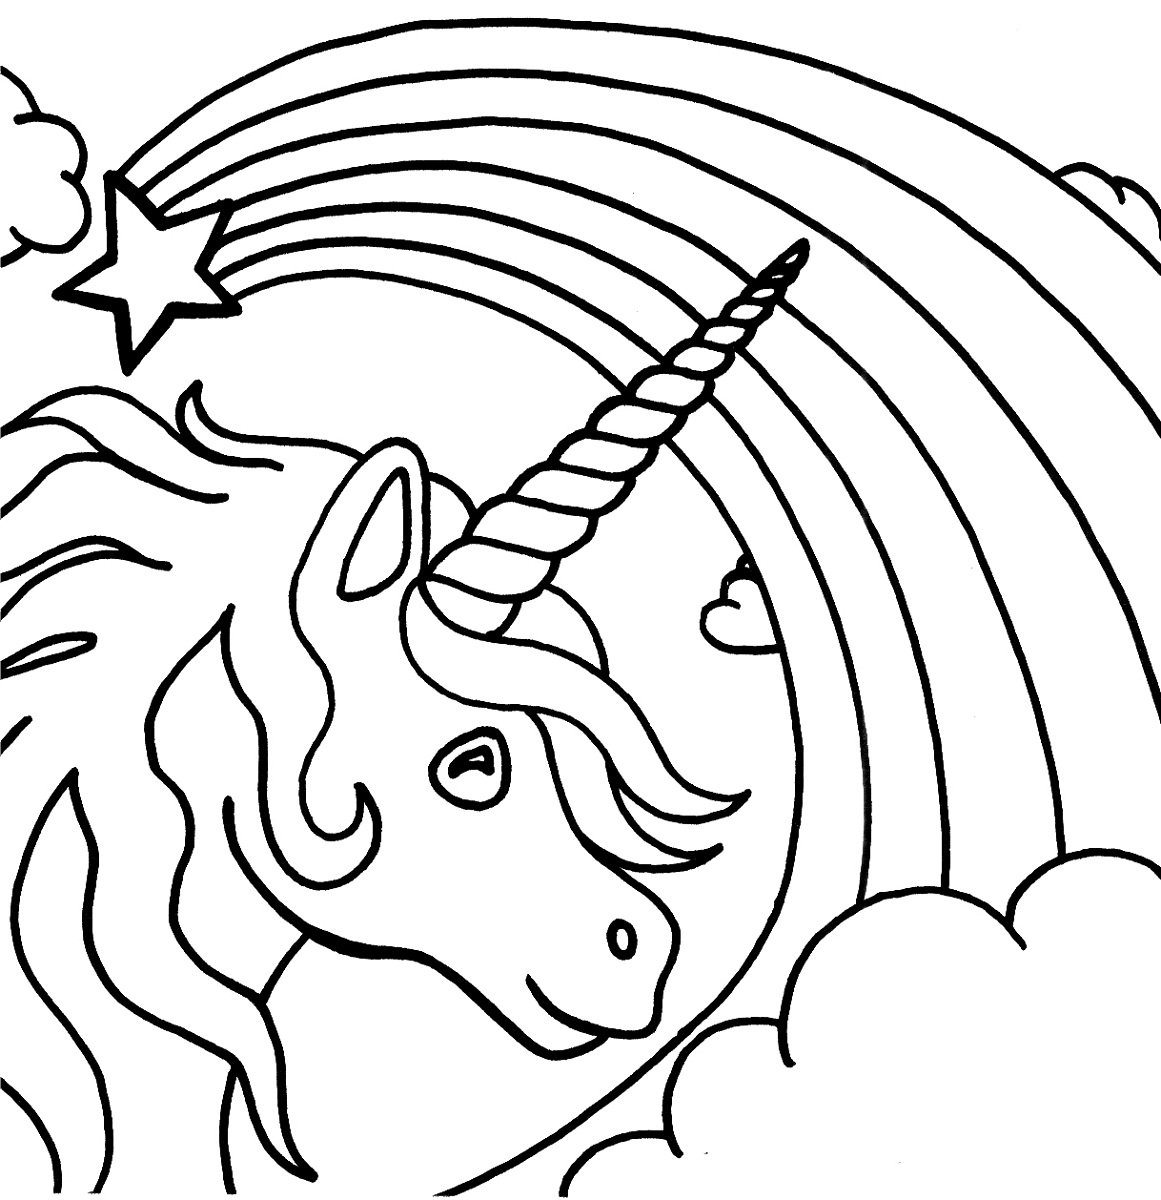 unicorn pictures coloring sheet unicorn color pages for kids activity shelter coloring unicorn pictures sheet